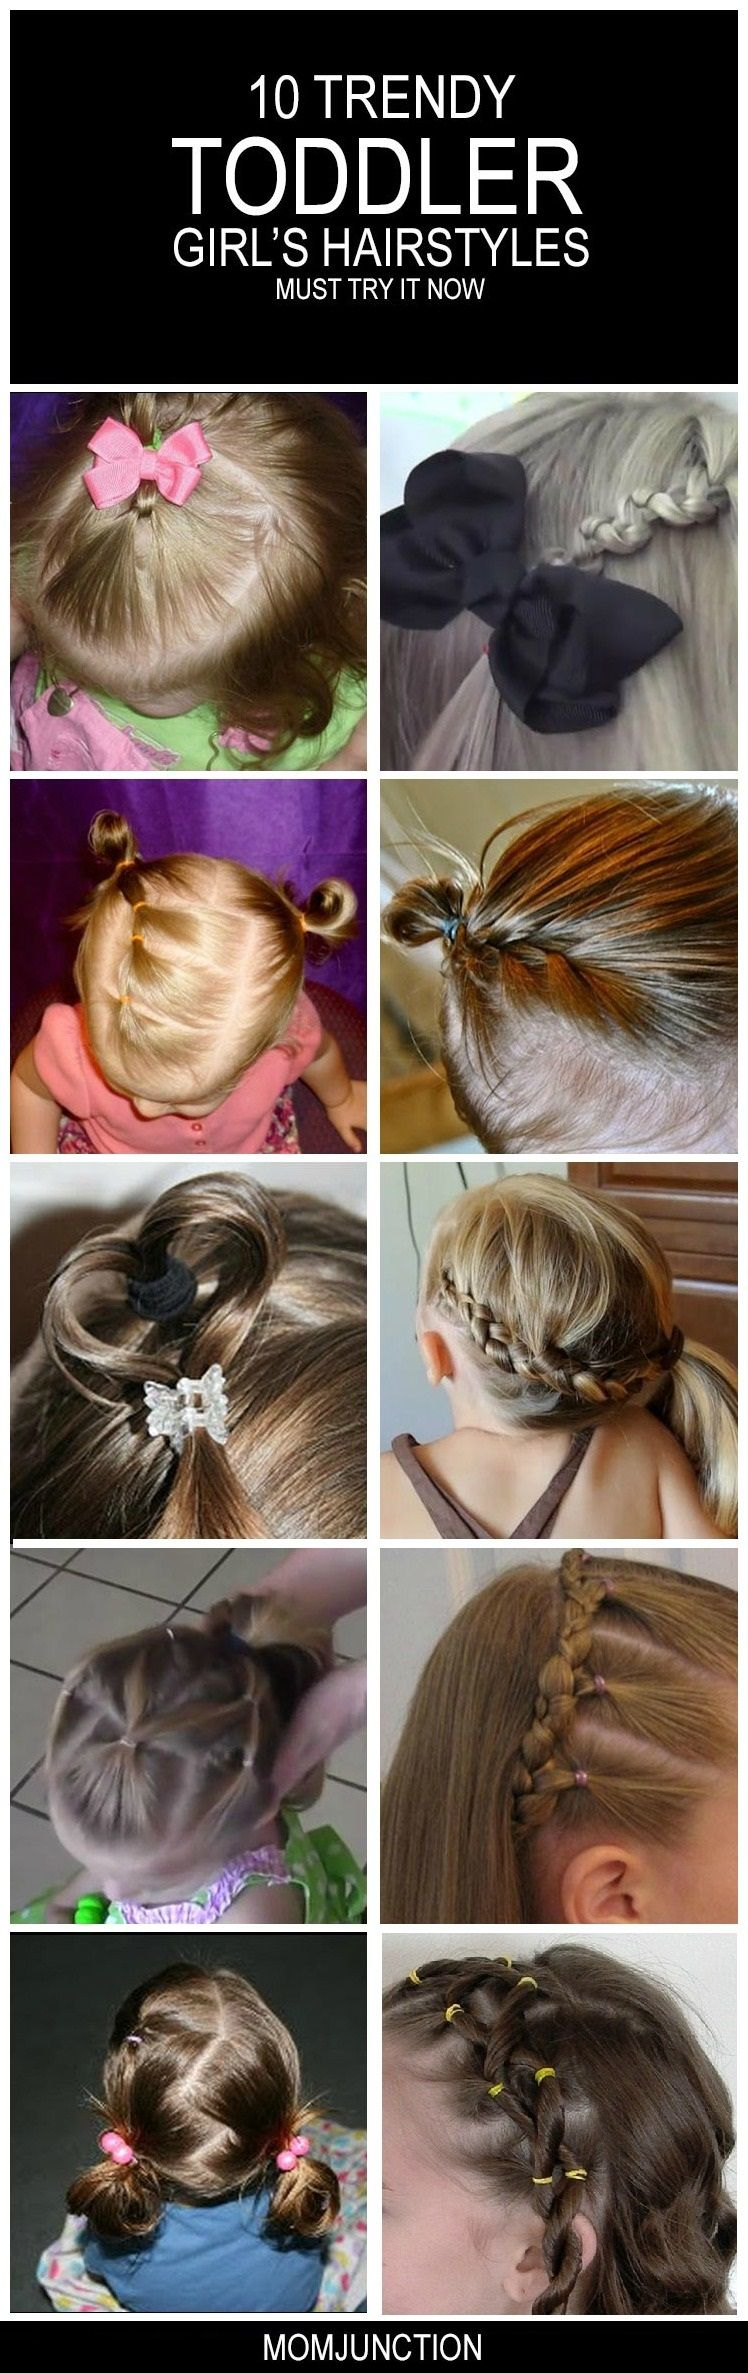 adorable toddler girl haircuts and hairstyles girl hairstyles